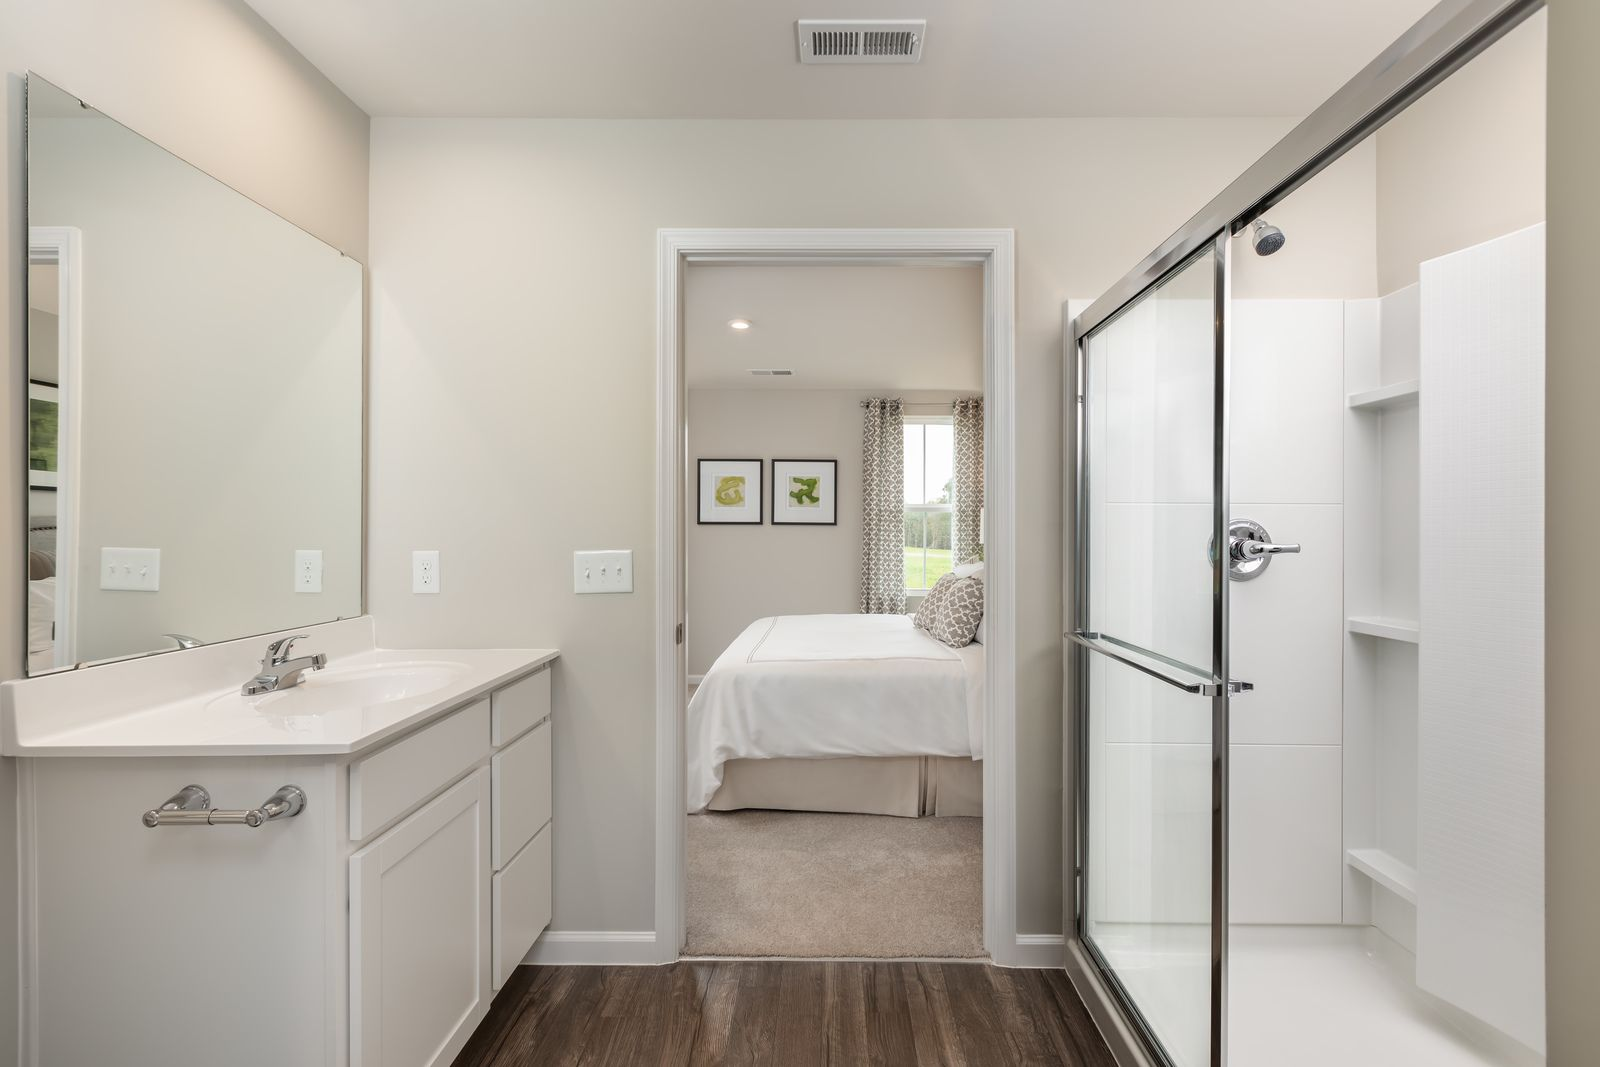 Bathroom featured in the Spruce w/ Included Basement By Ryan Homes in Cincinnati, OH